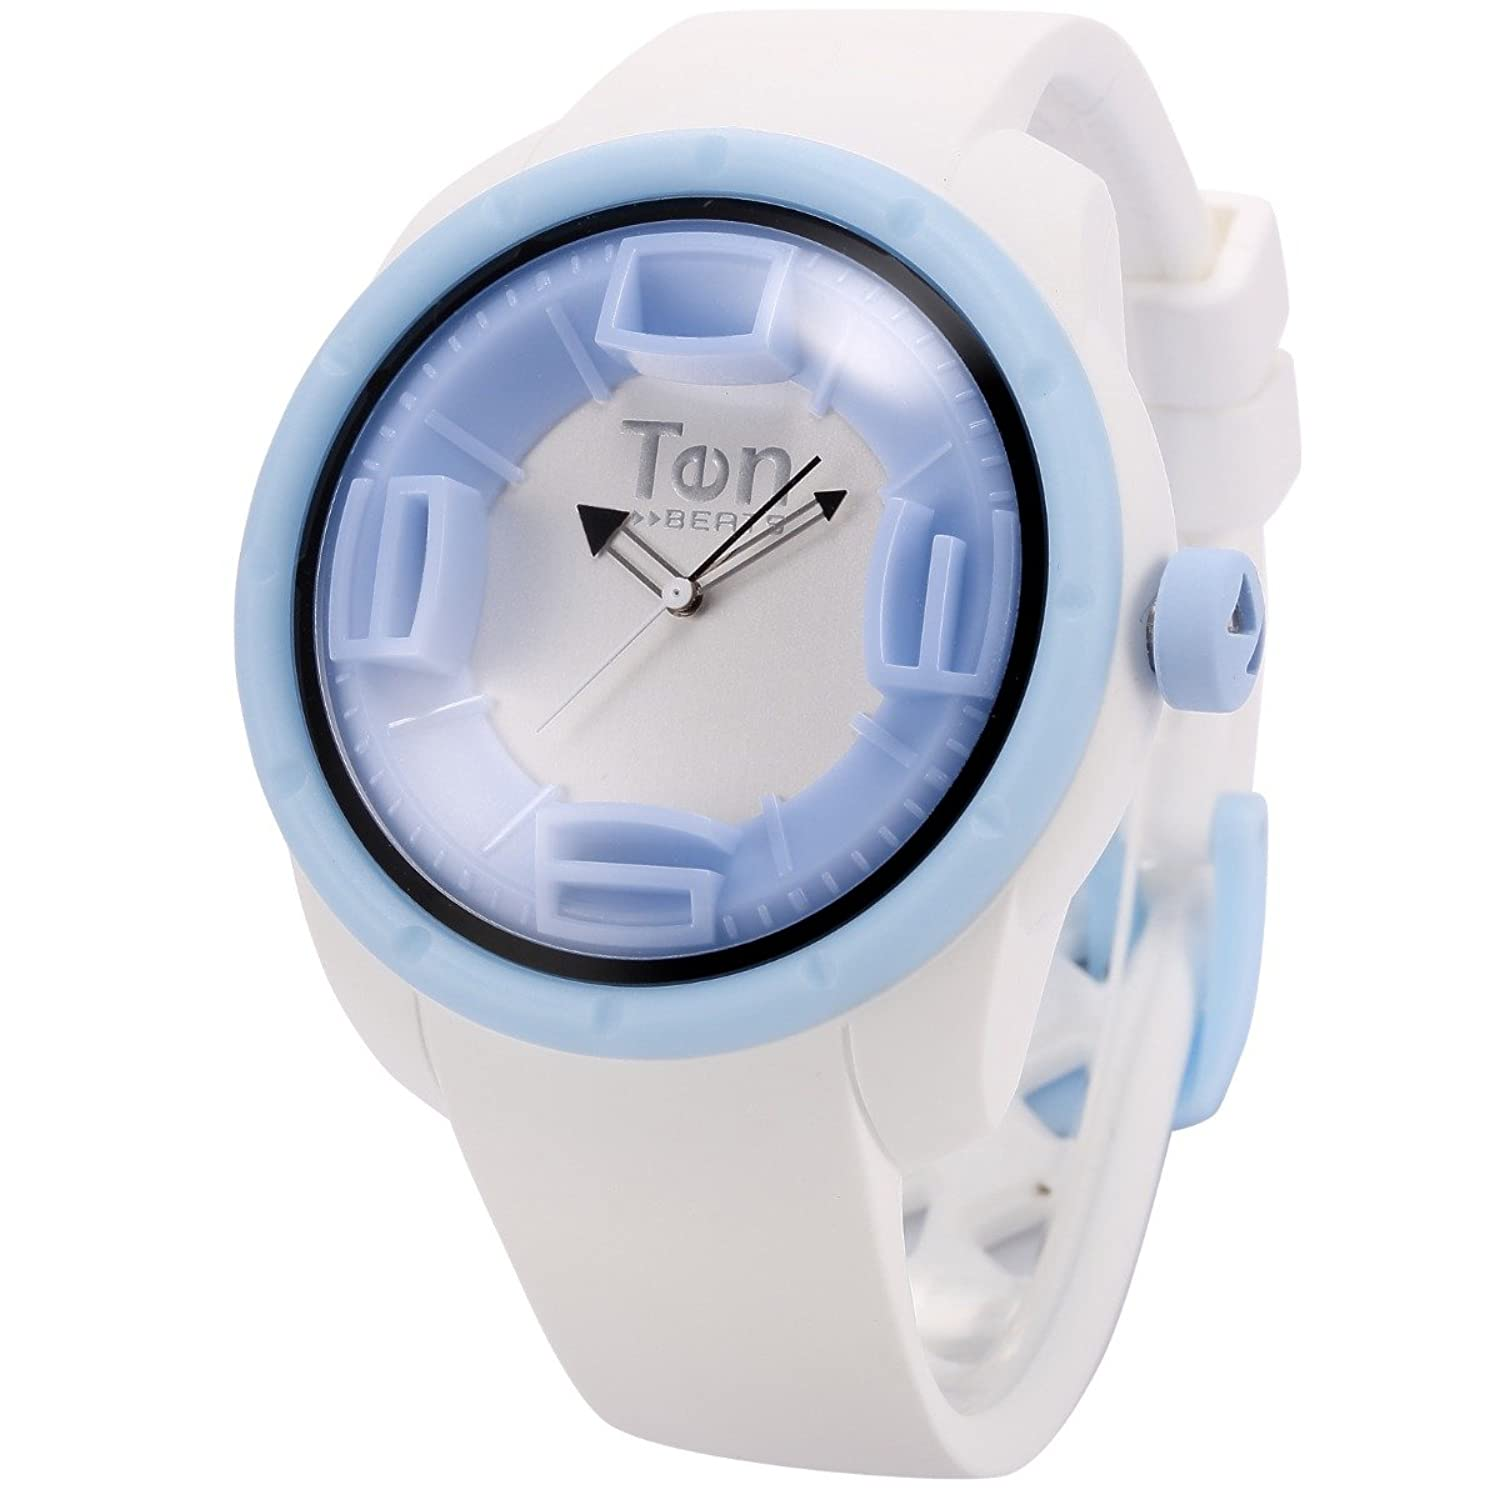 TENDENCE - Ten Beats Snow Unisex White Sillicone Analog Quartz Sport Wrist Watch - BF130205 ten years after ten years after undead expanded 2 lp 180 gr